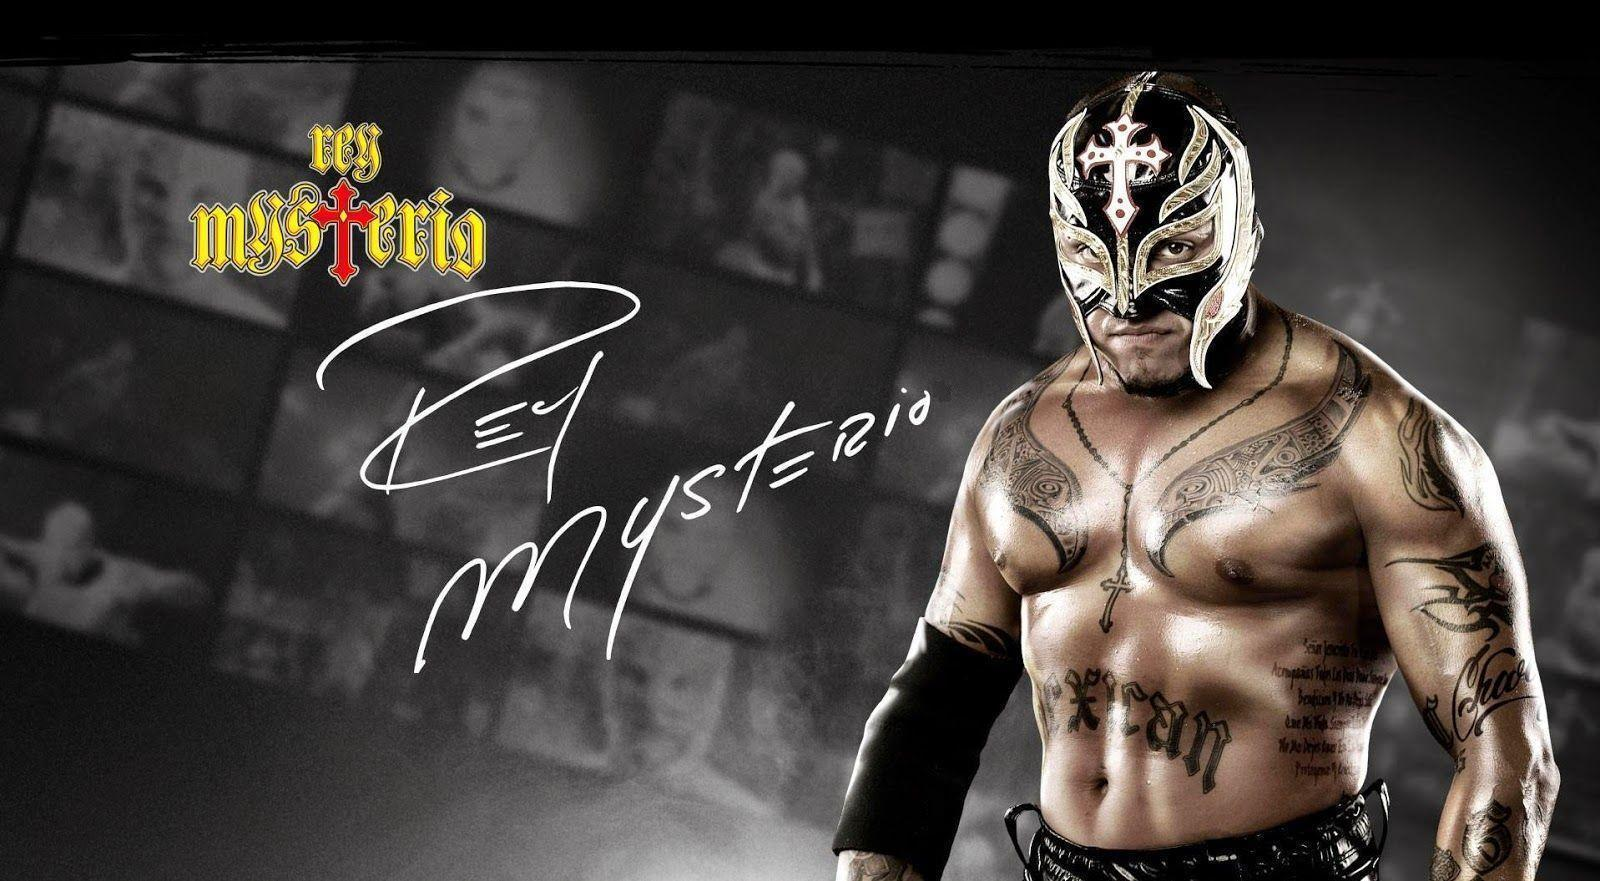 Rey mysterio 2015 full hd wallpapers wallpaper cave - Wwe 619 images ...